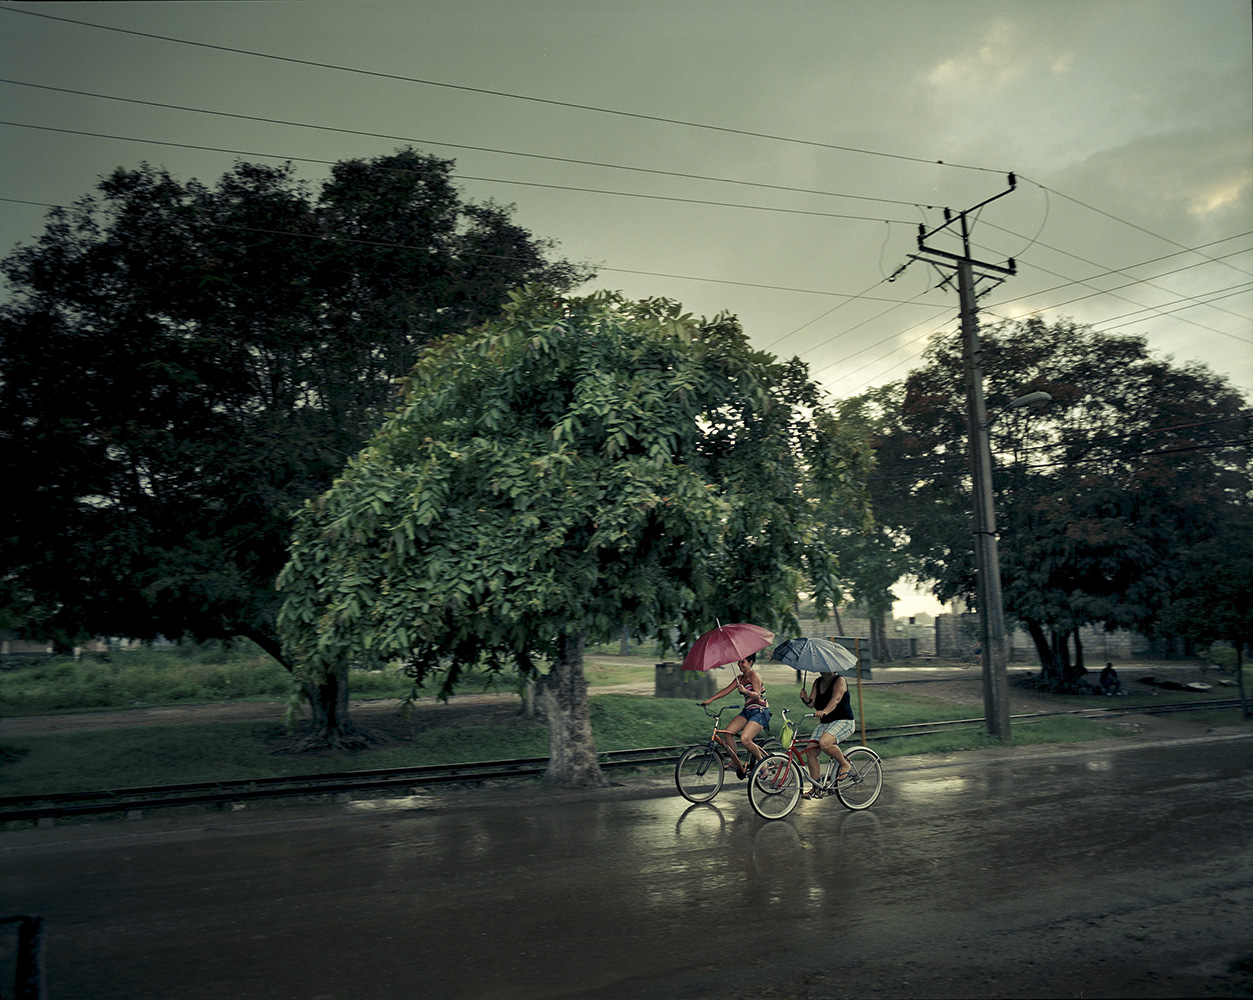 Girls ride their bikes under the rain in Manati town, some 460 miles east  of Havana. Bikes are the main transportation means in this area, due to lack of public transportation.